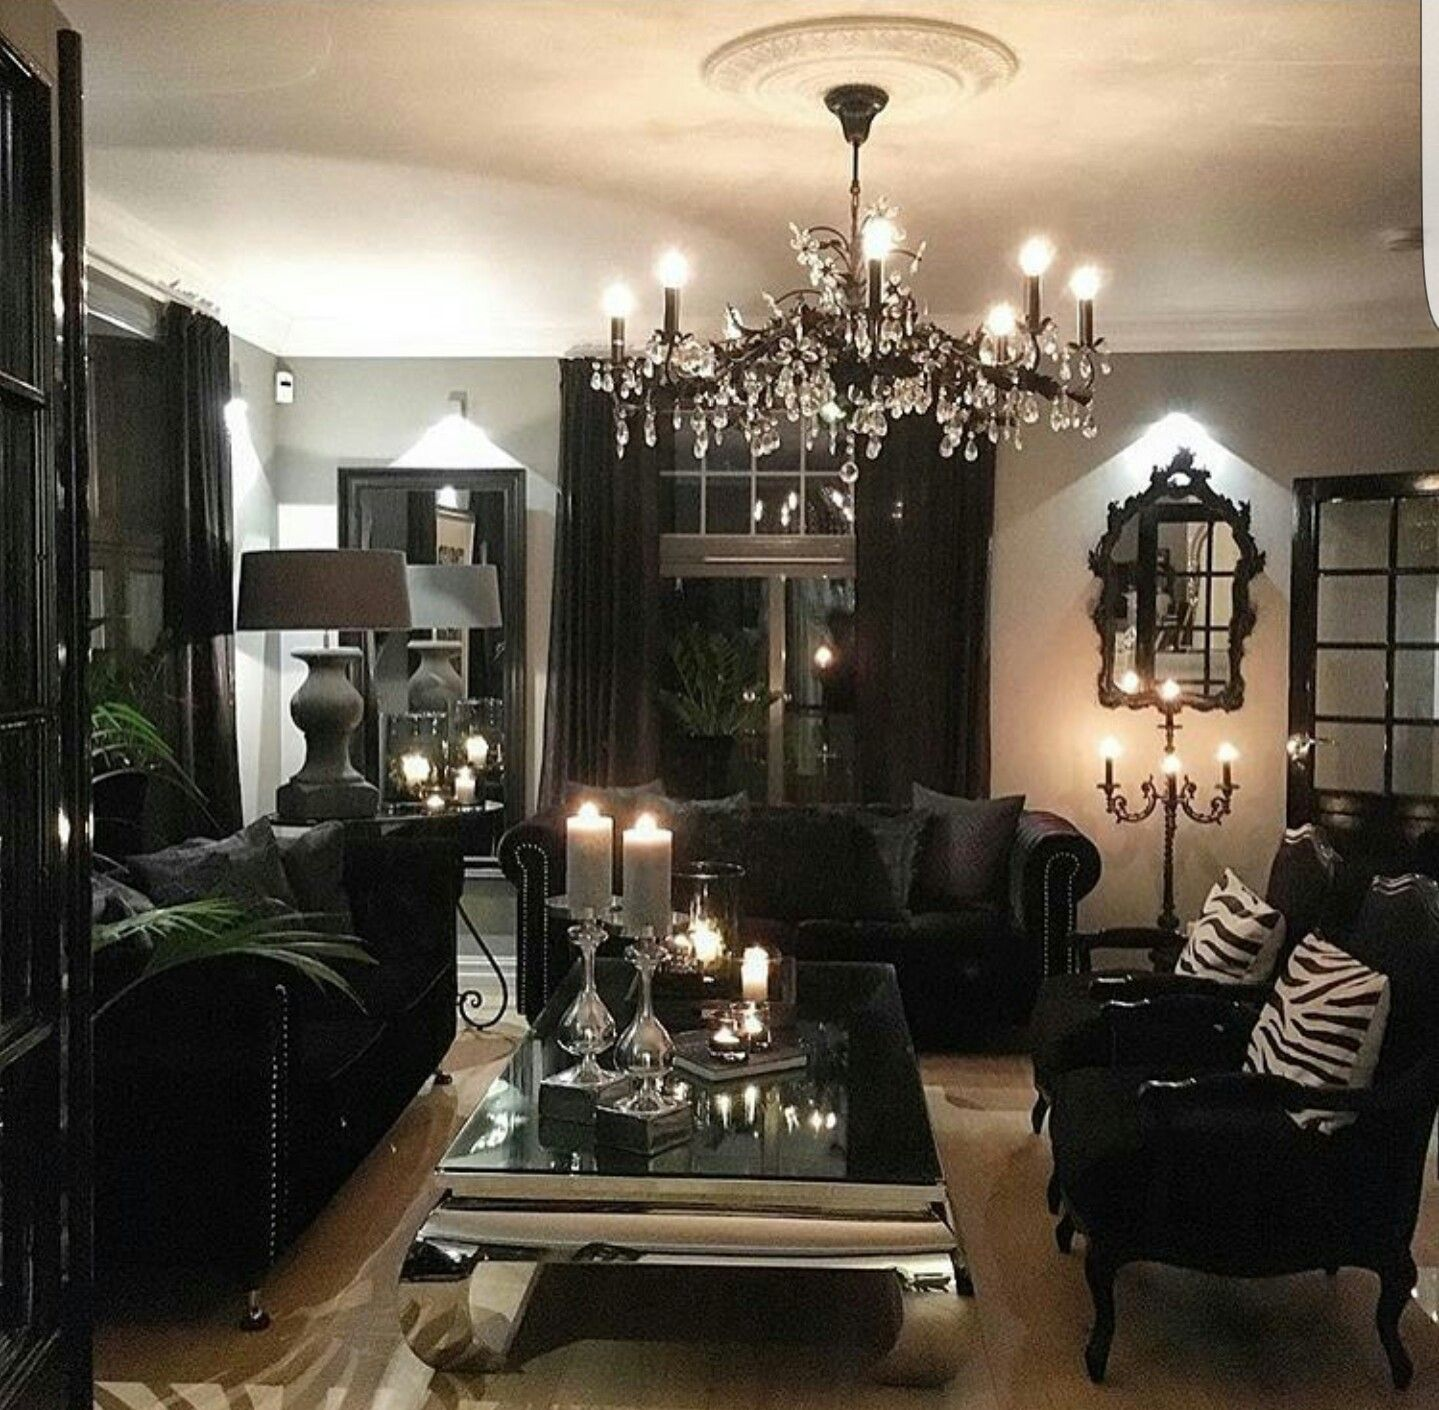 Home Interior Design Living Rooms: Pin By Jess Cisneros On Pretty House